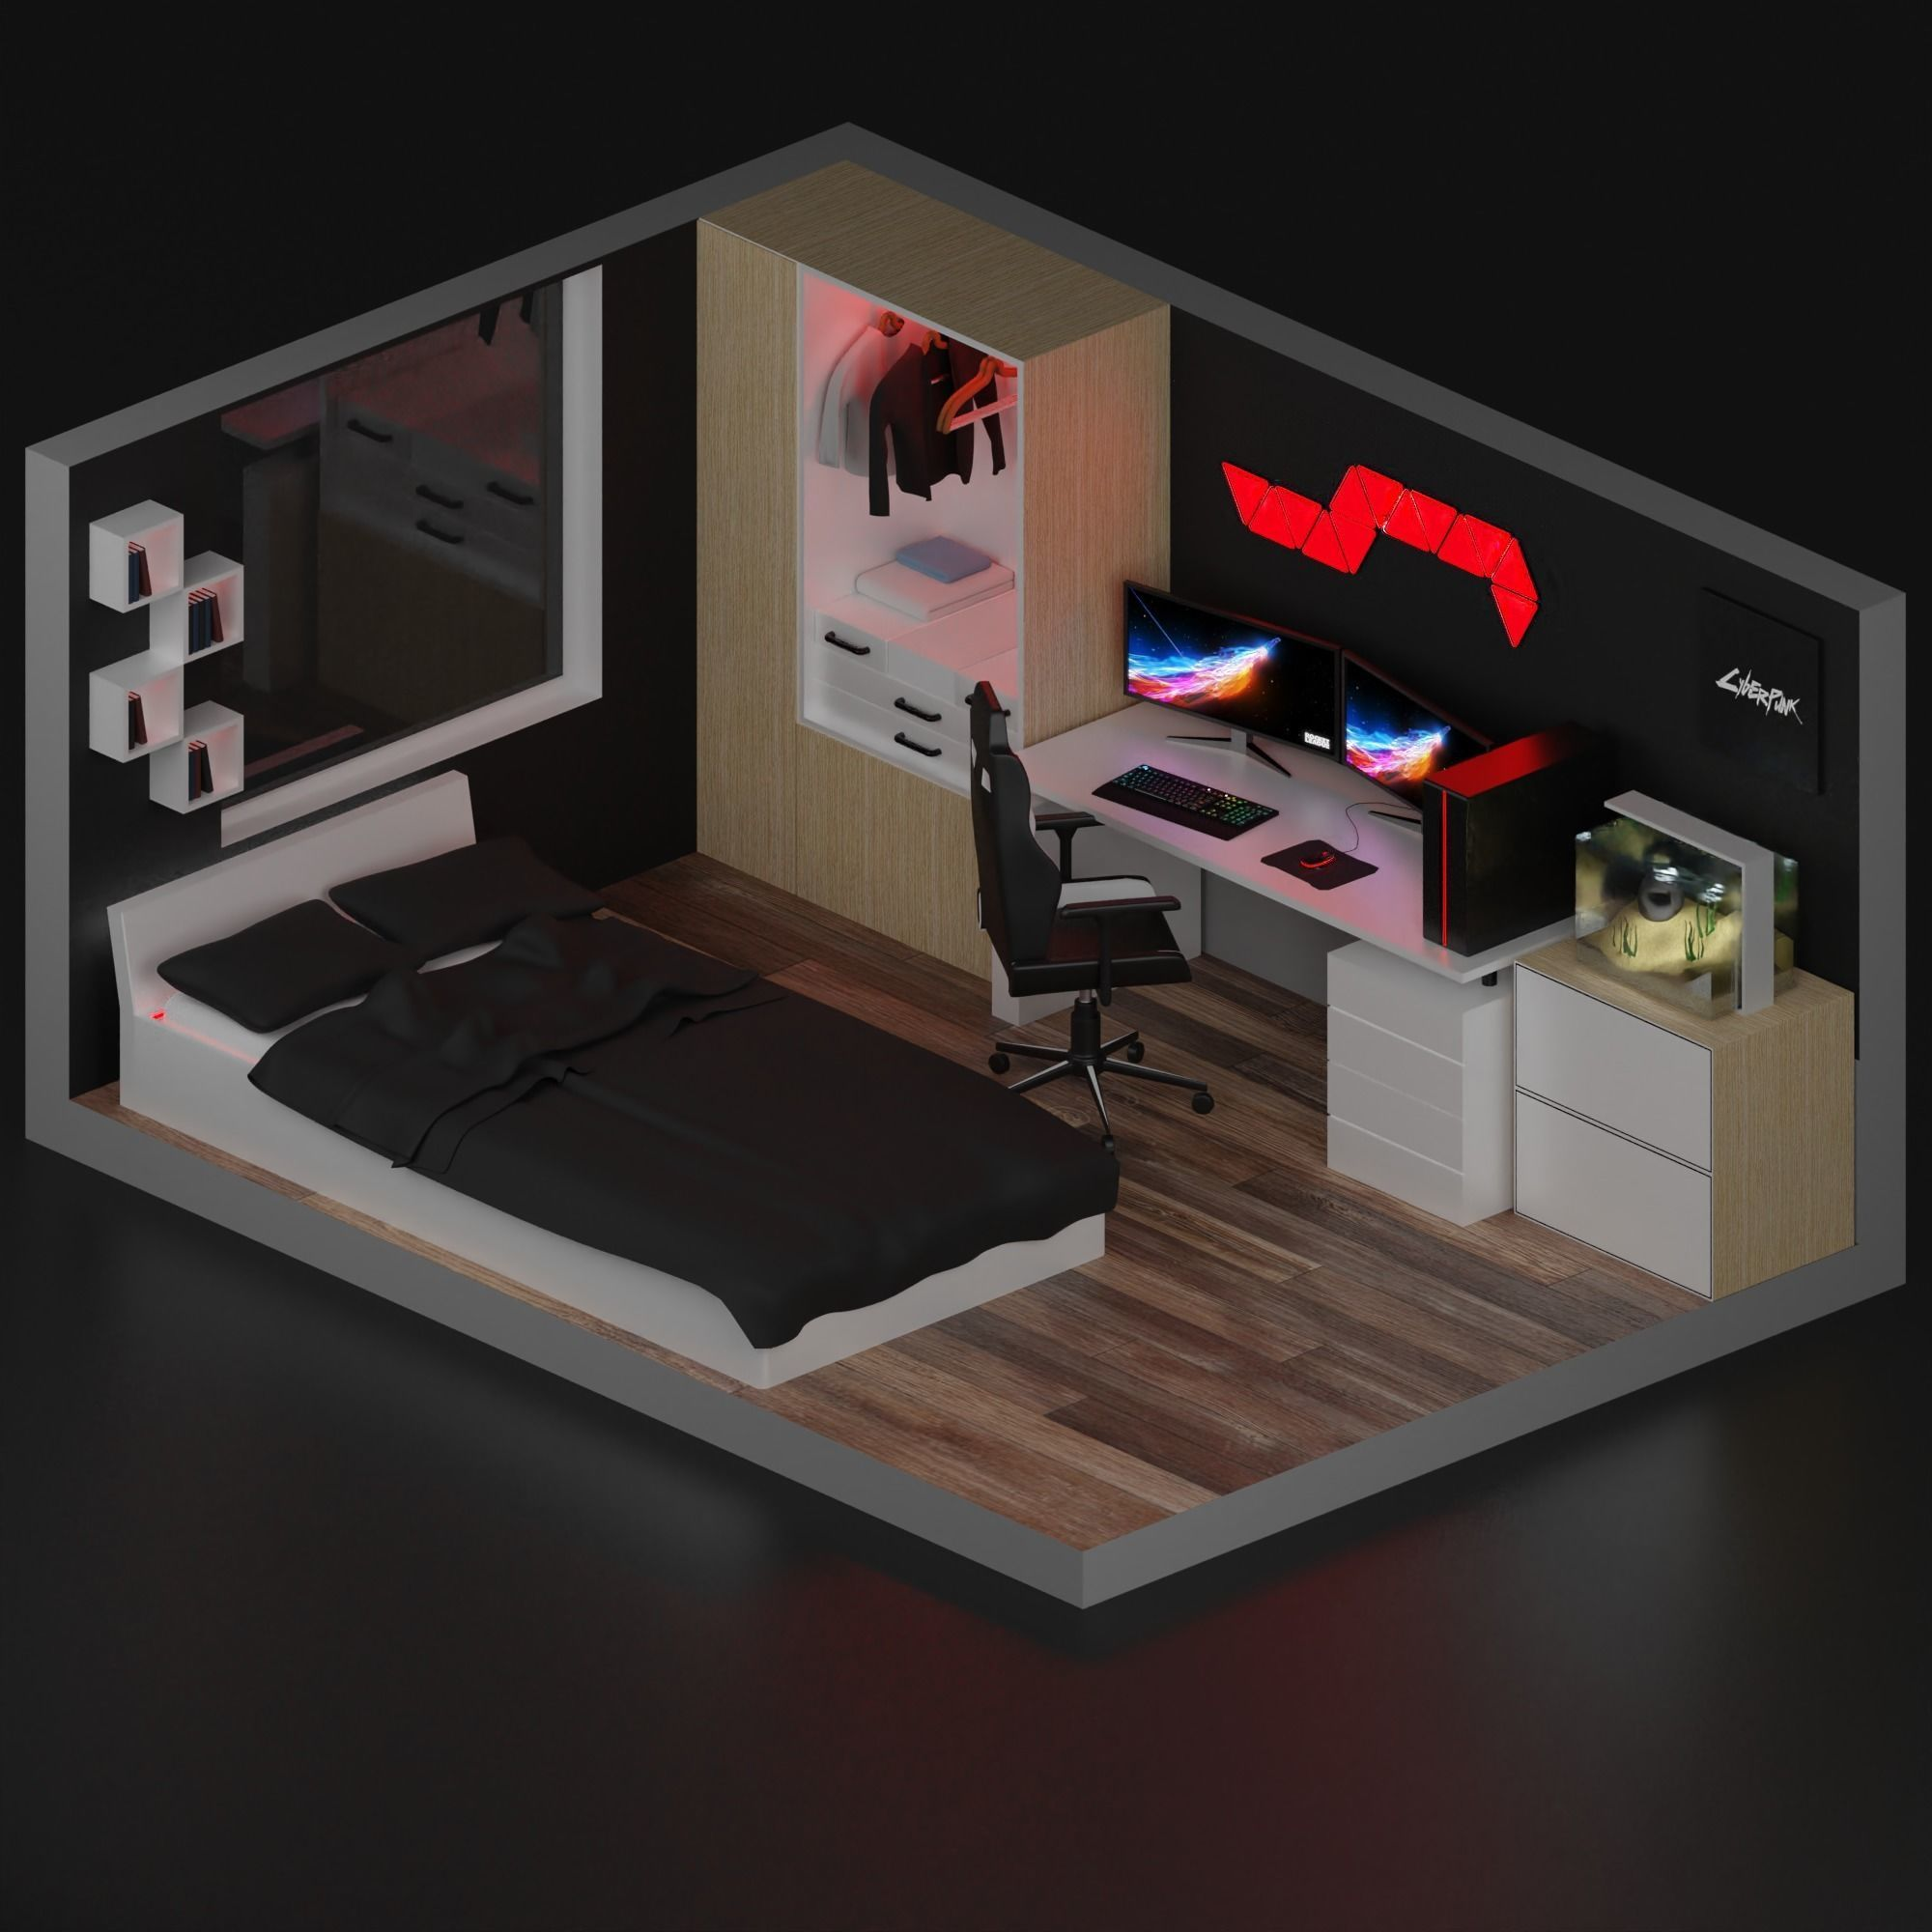 3d Model Realtime Gaming Room Cgtrader Designing a video game room in your house can be really hard, but these video game room decoration images will help you a lot in 2021. gaming room 3d model